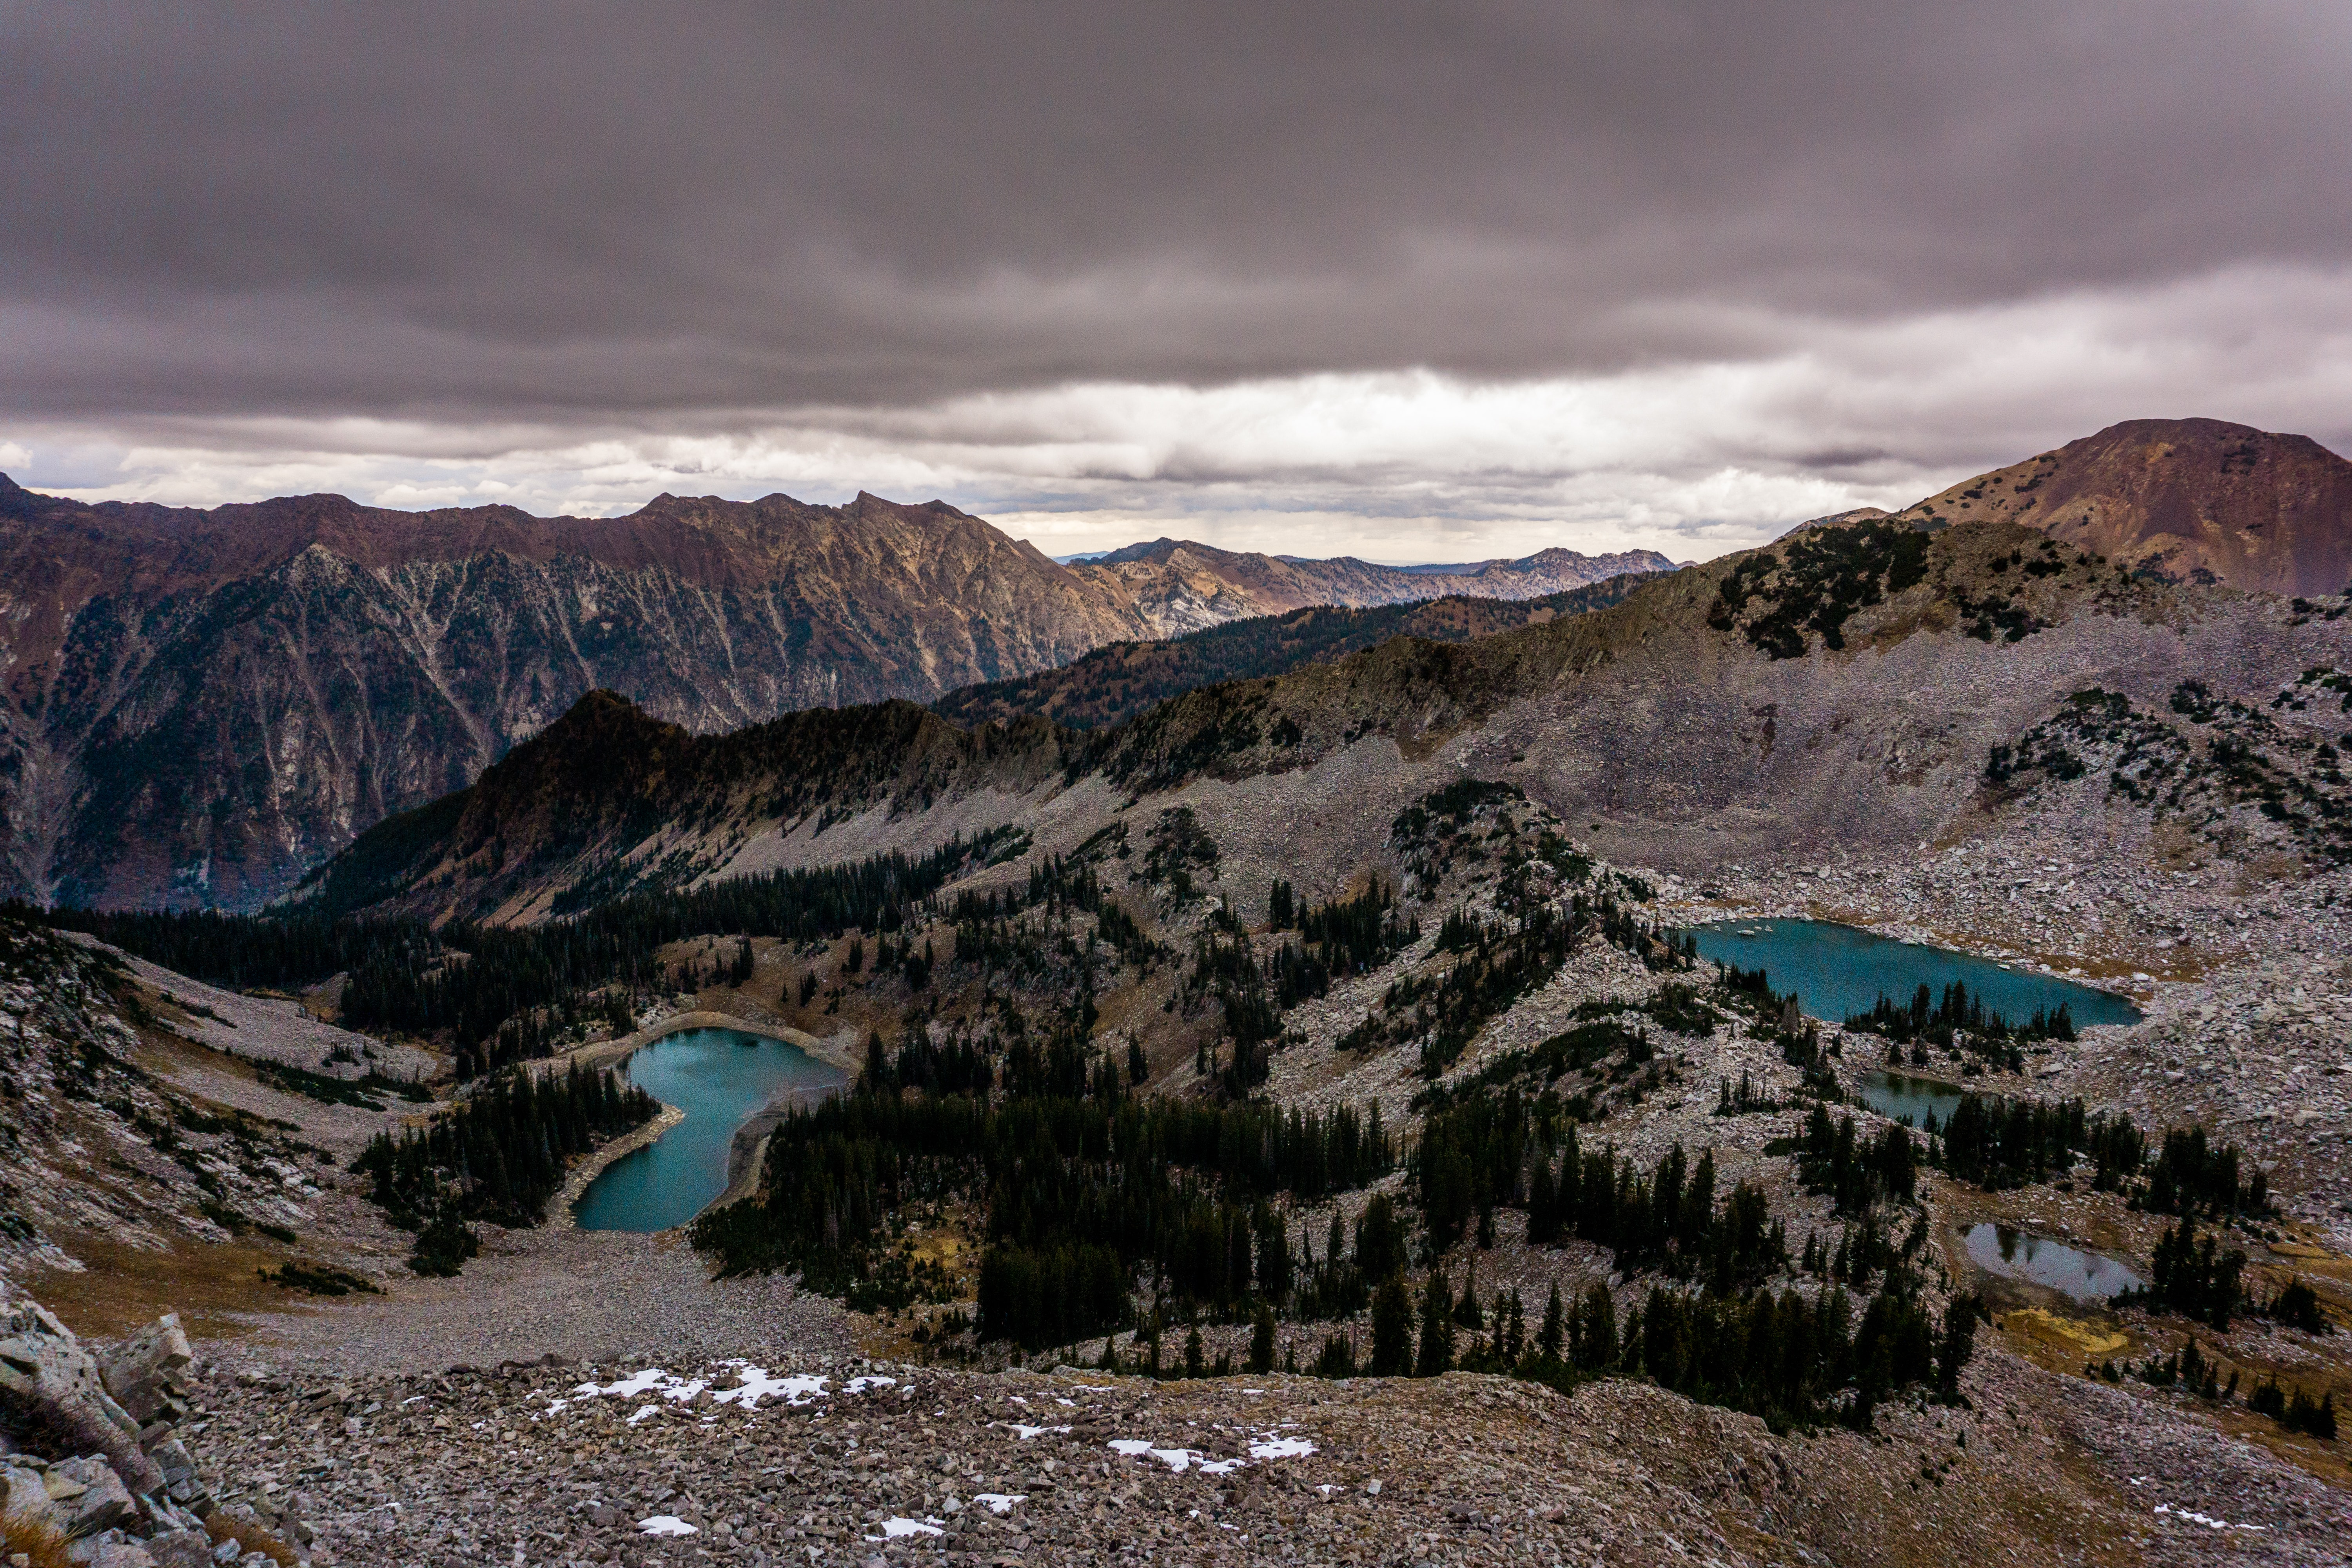 Beautiful drone mountain, lake, and forest views in little cottonwood